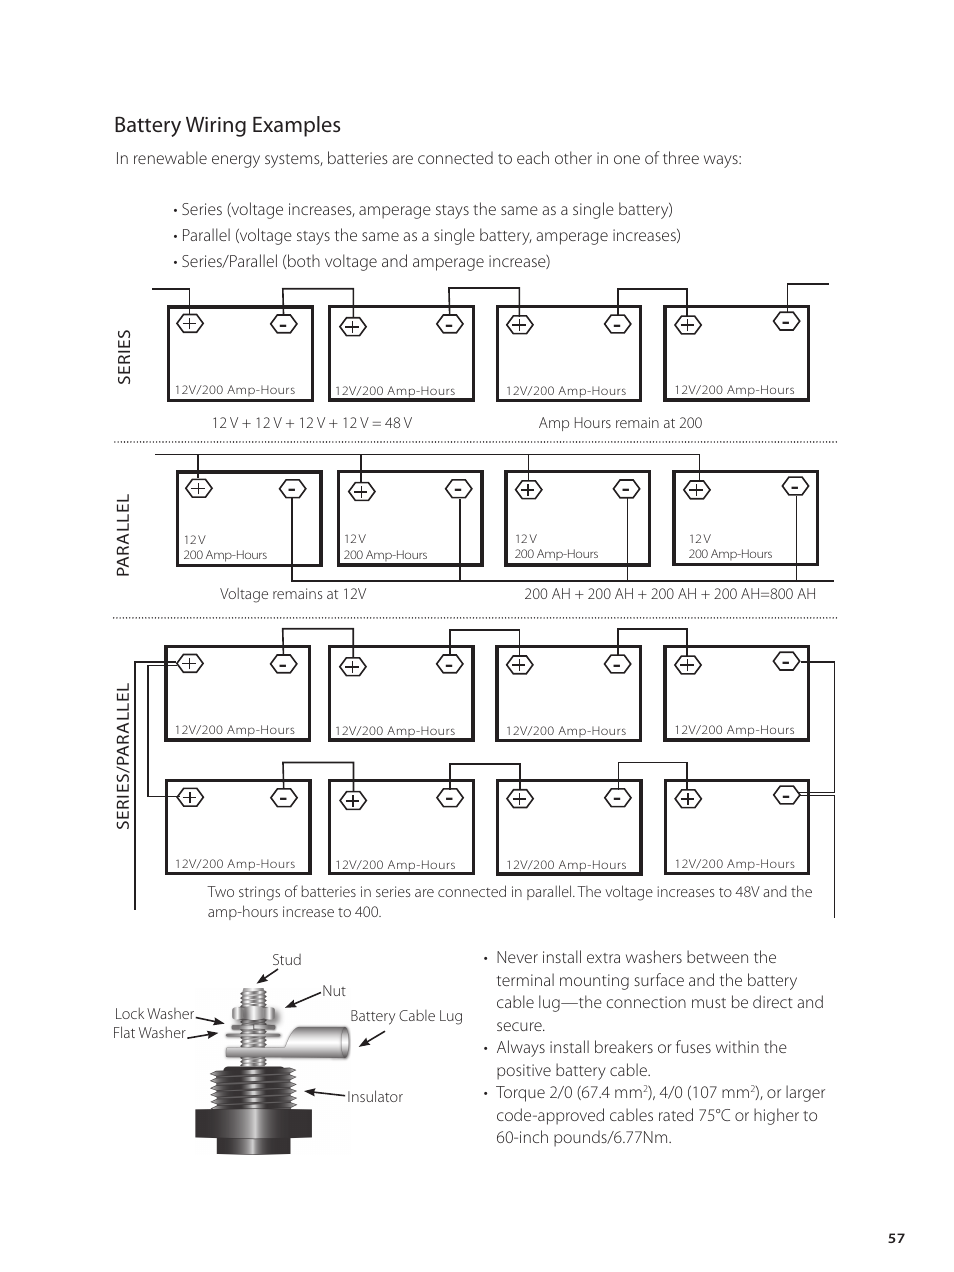 Battery Wiring Examples Outback Power Systems Gvfx Series Inverter And Parallel Bank Charger Installation Manual User Page 59 88